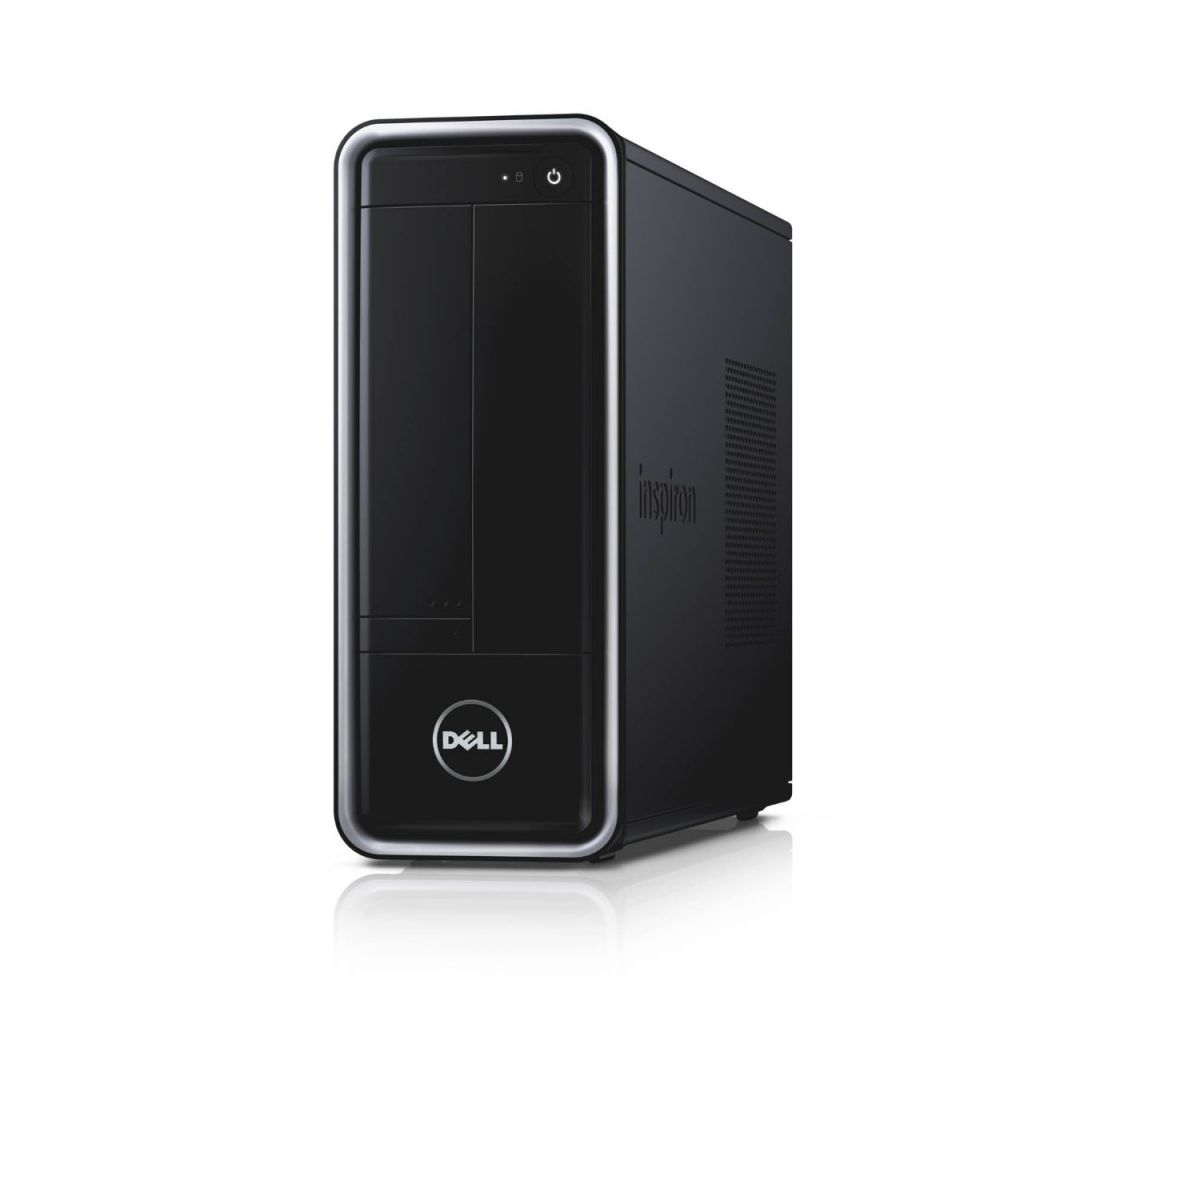 Cpu Dell Inspiron 3647 - I5 4460S 2.9Ghz| Ram 8Gb | Hd 1Tb | Dvd | Win10 Home